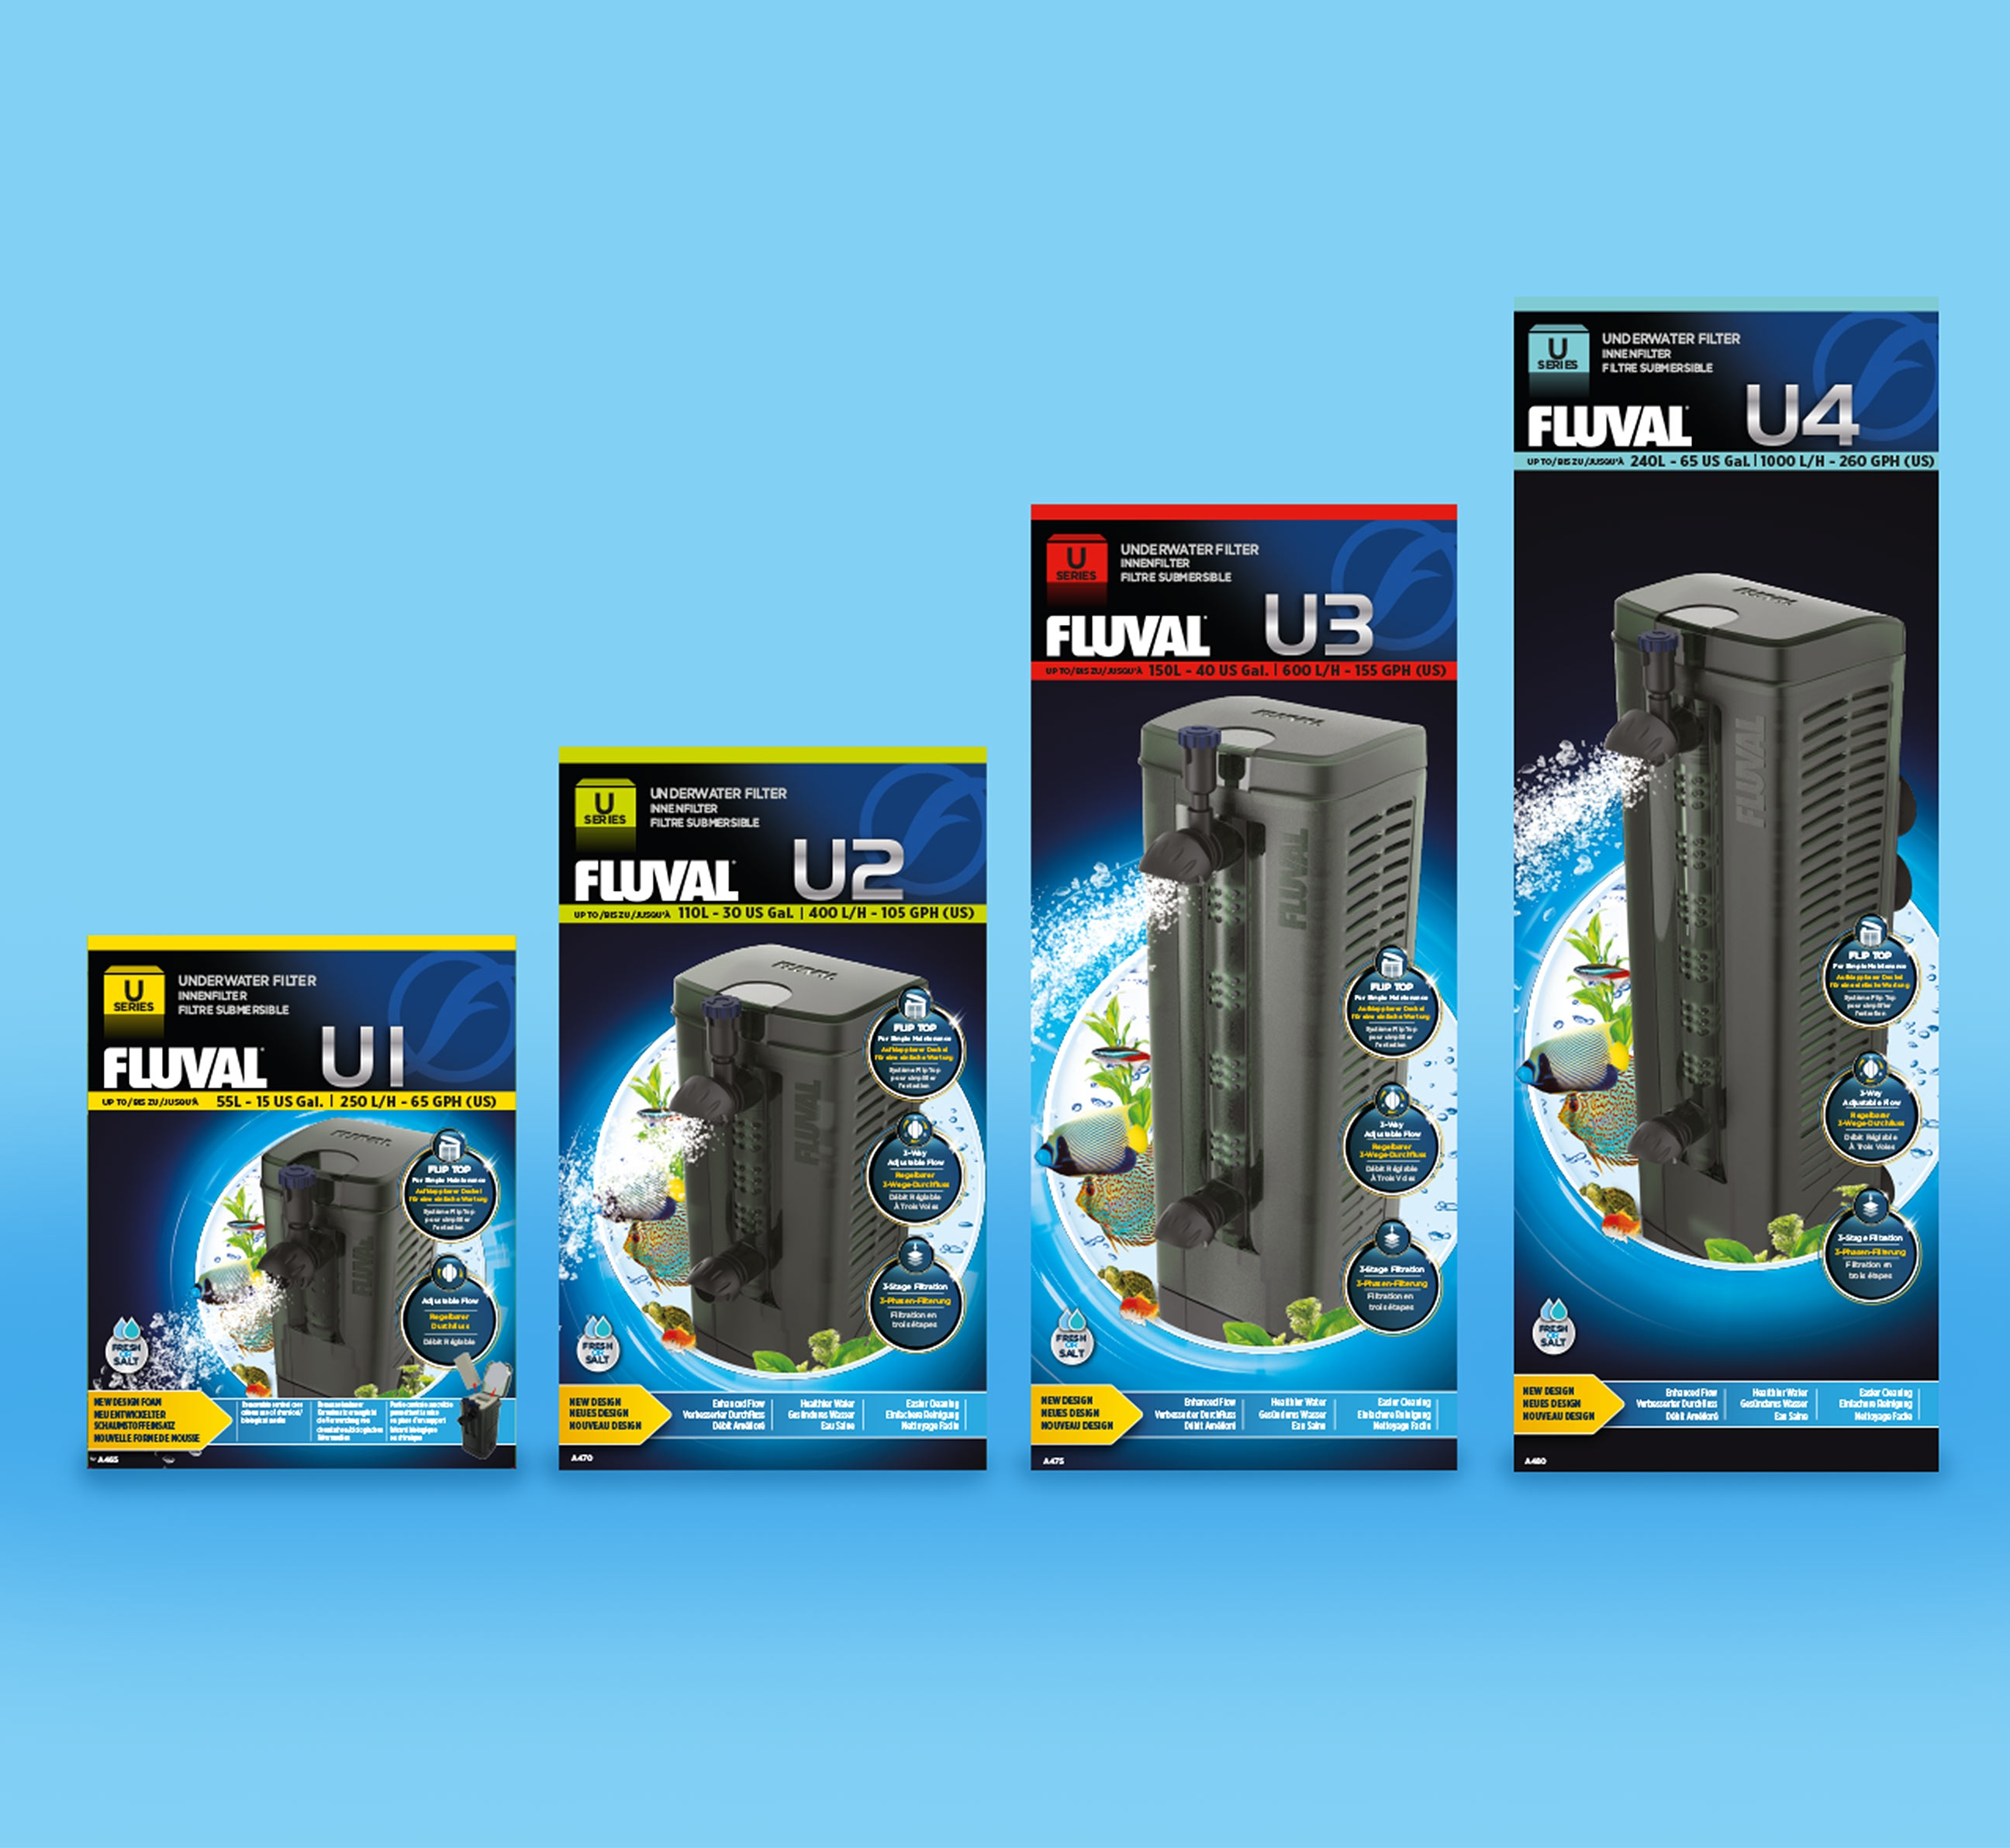 Fluval Packaging Design